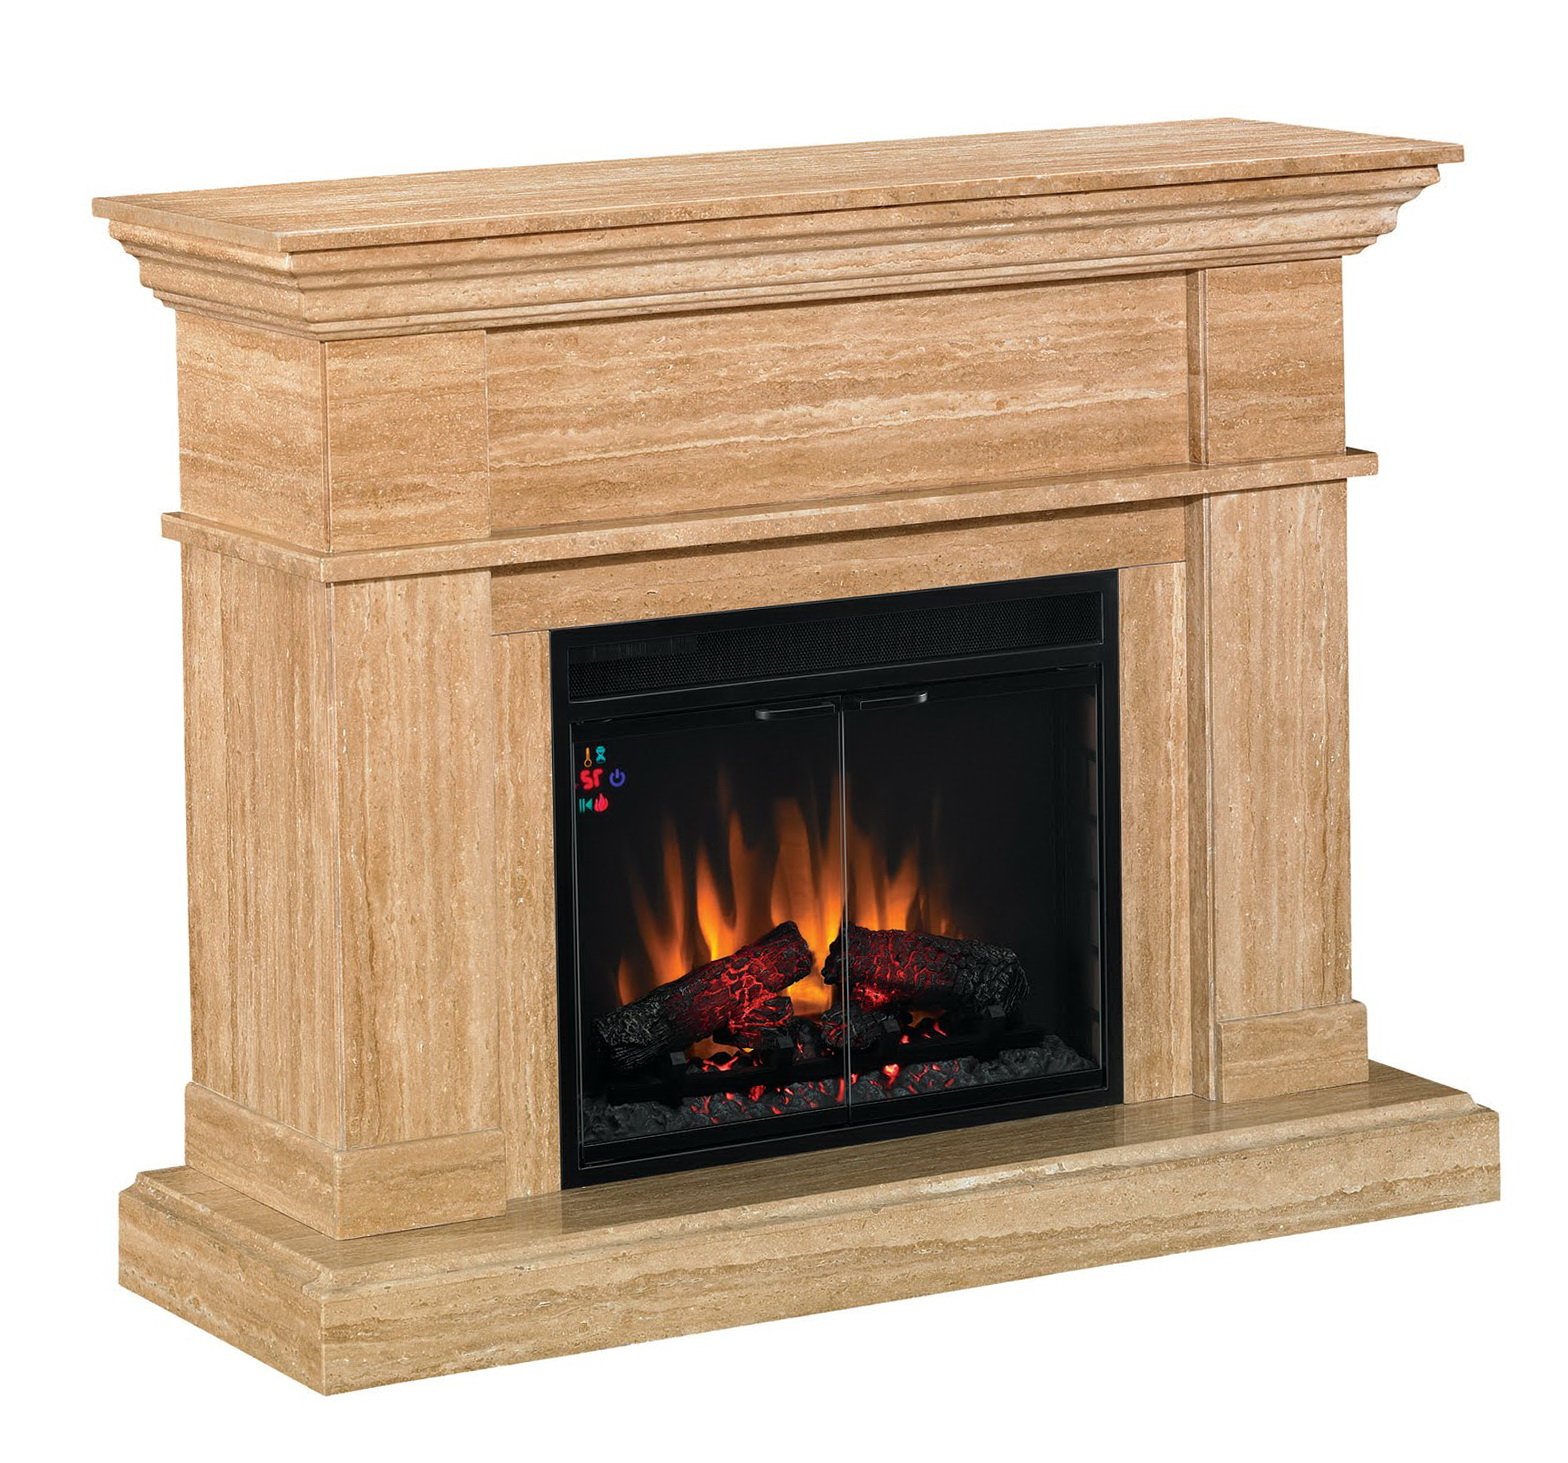 salem martintm products energy efficient martin fireplace oak antique ventless holly elkmont underwood electric